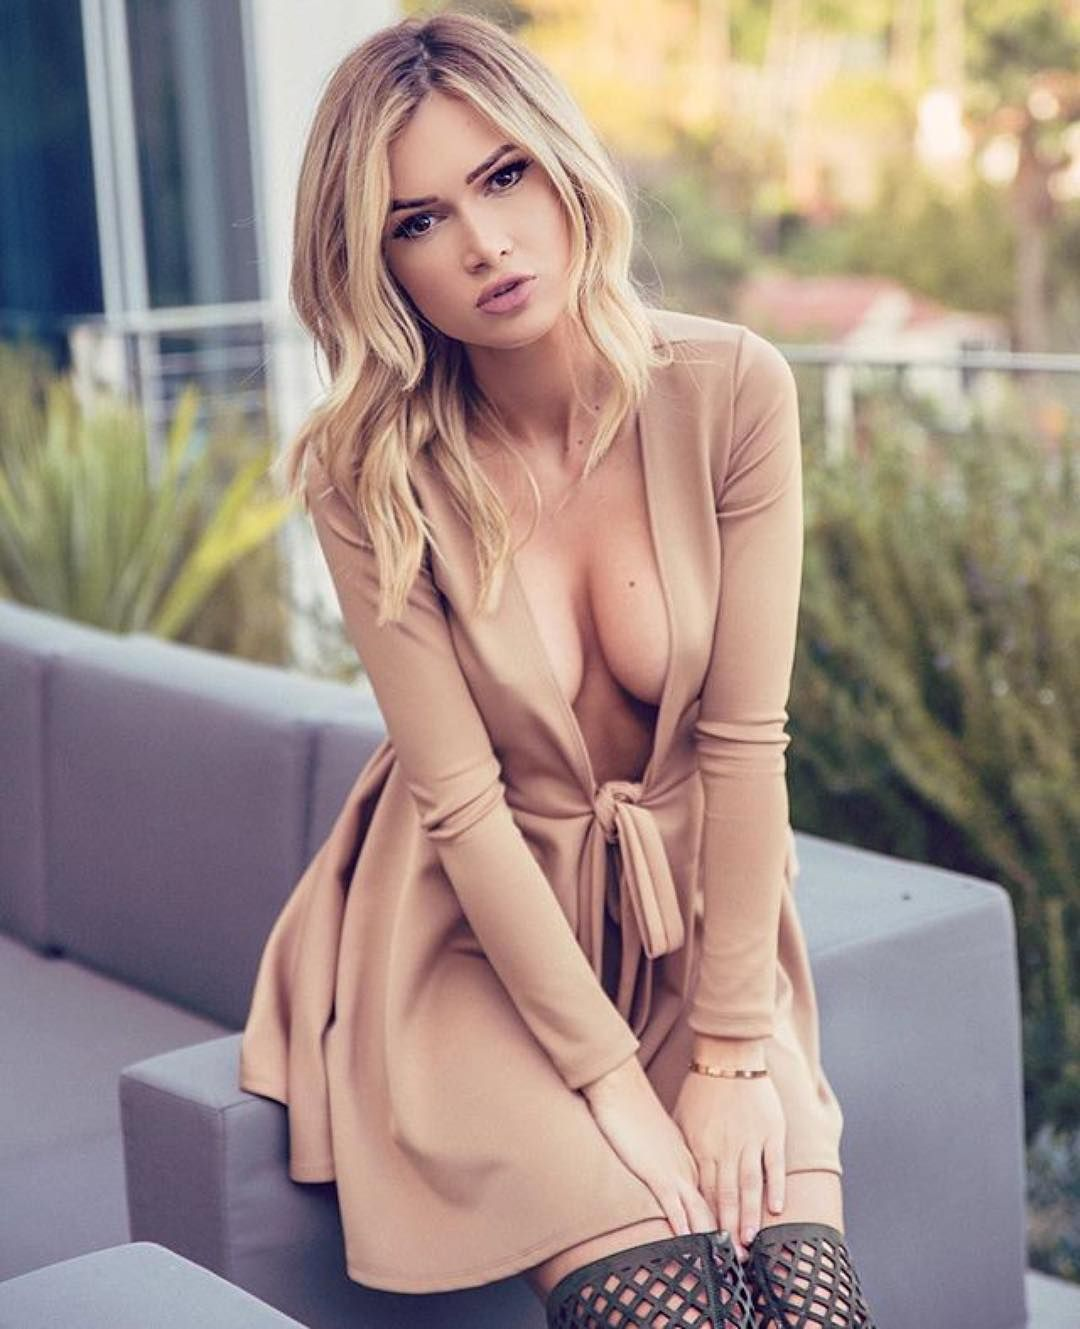 Pin On Our Babe Officialellarose Loving Wantmylook Shannon Dress Link In Bio